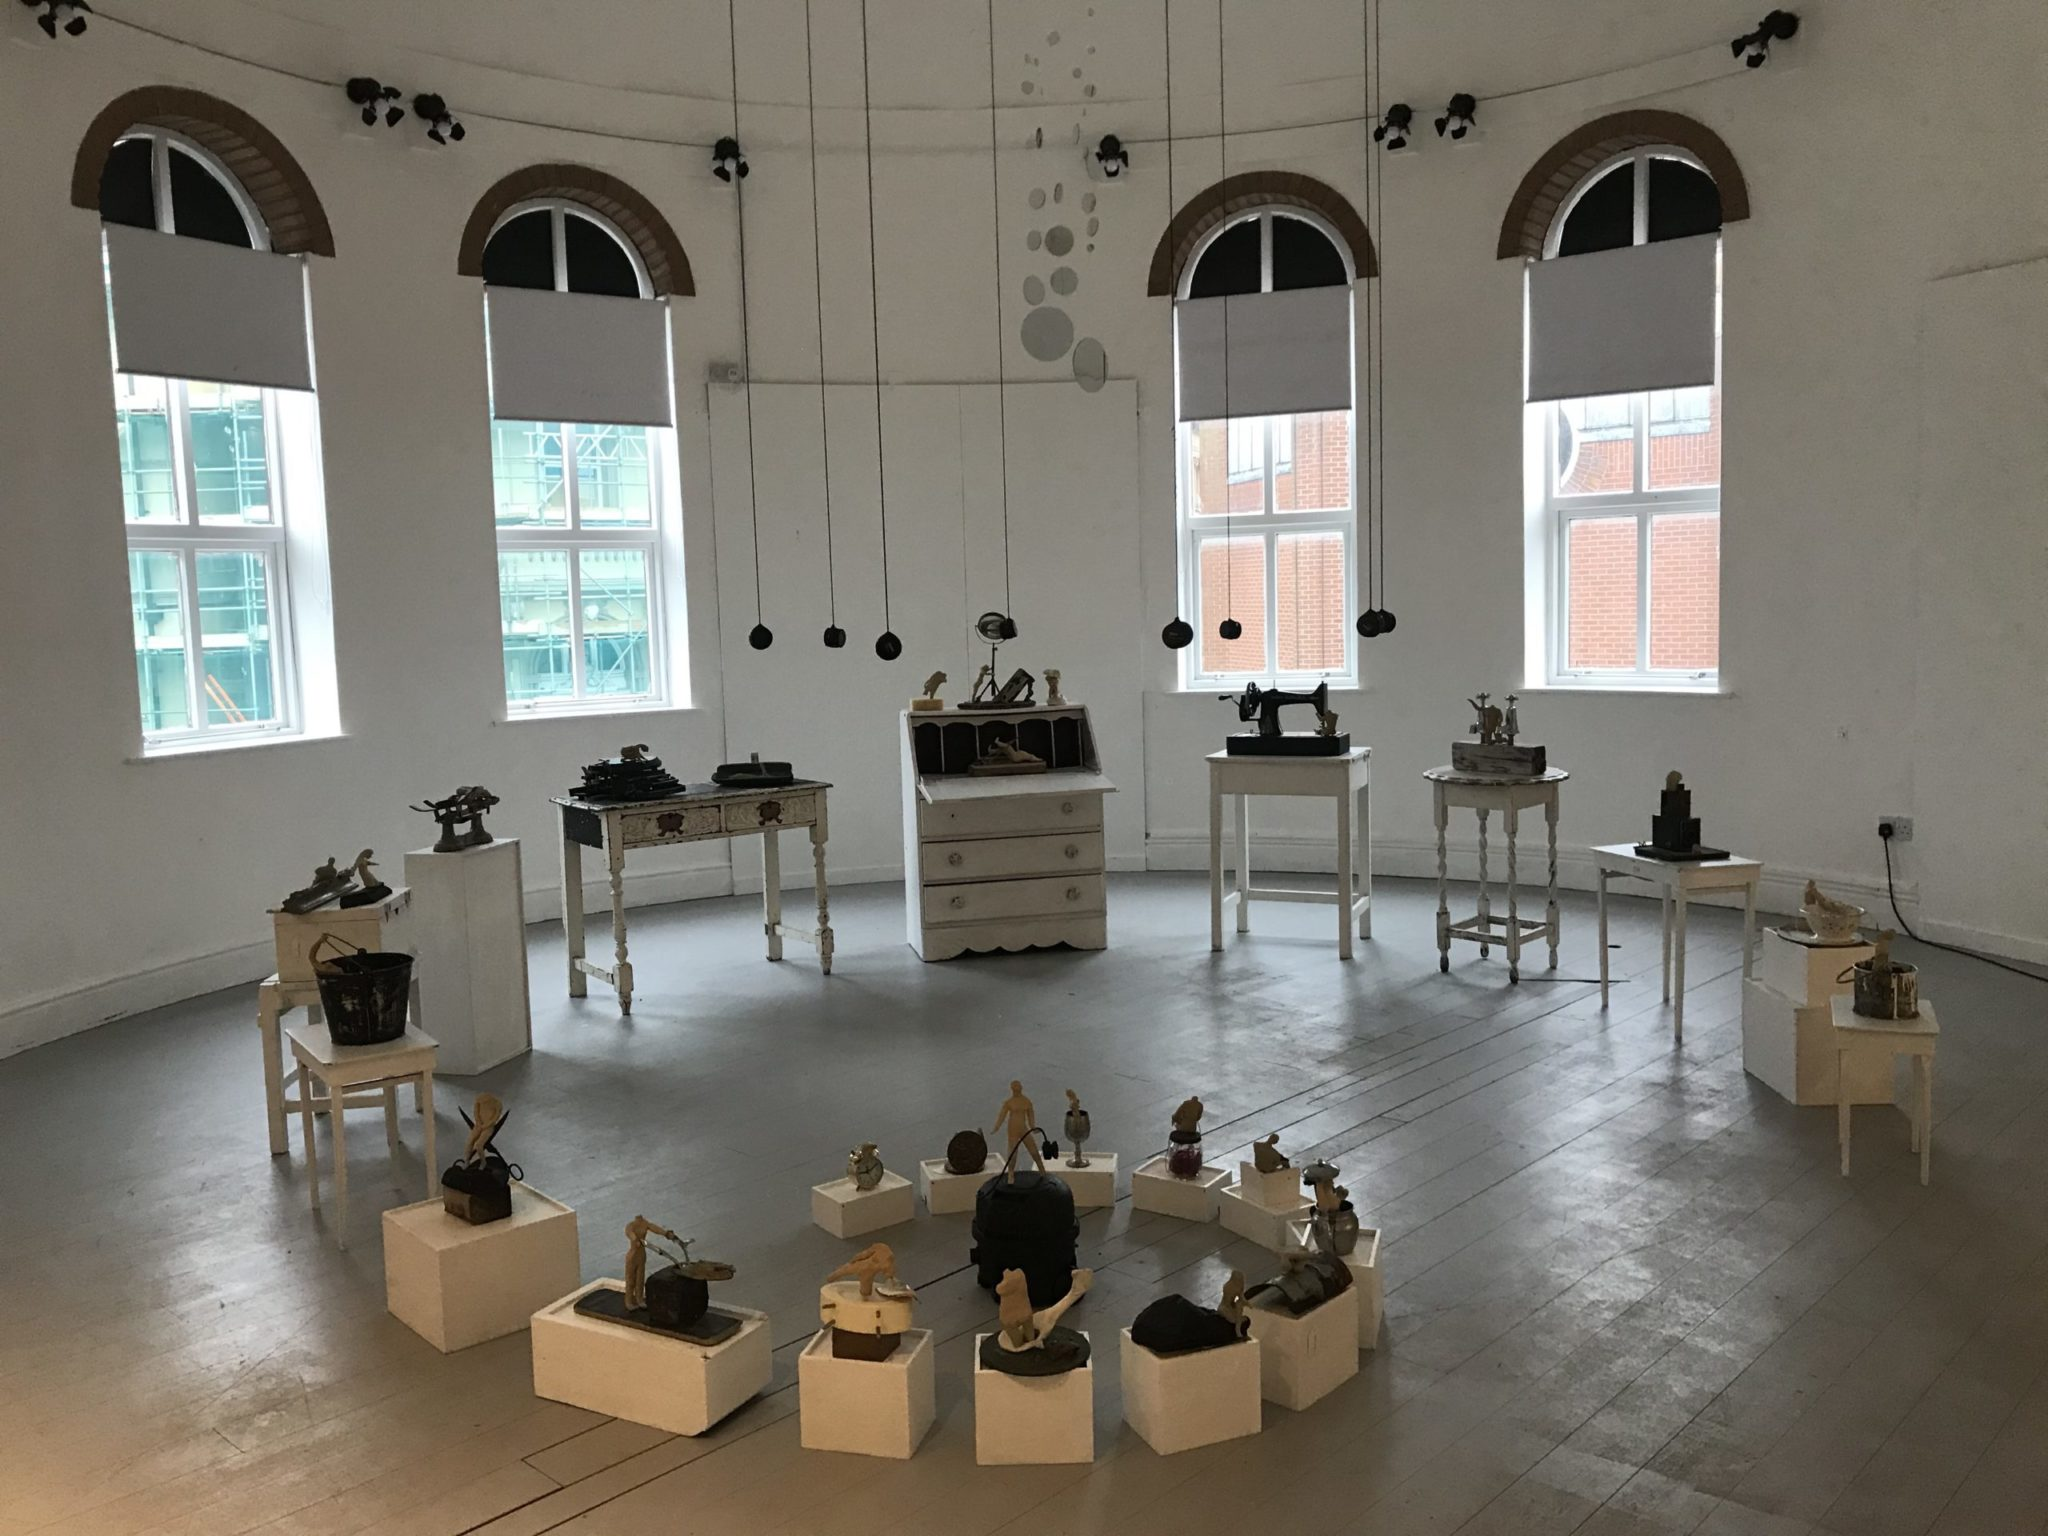 art installation with white furniture poinths and small sculpture at artcore derby